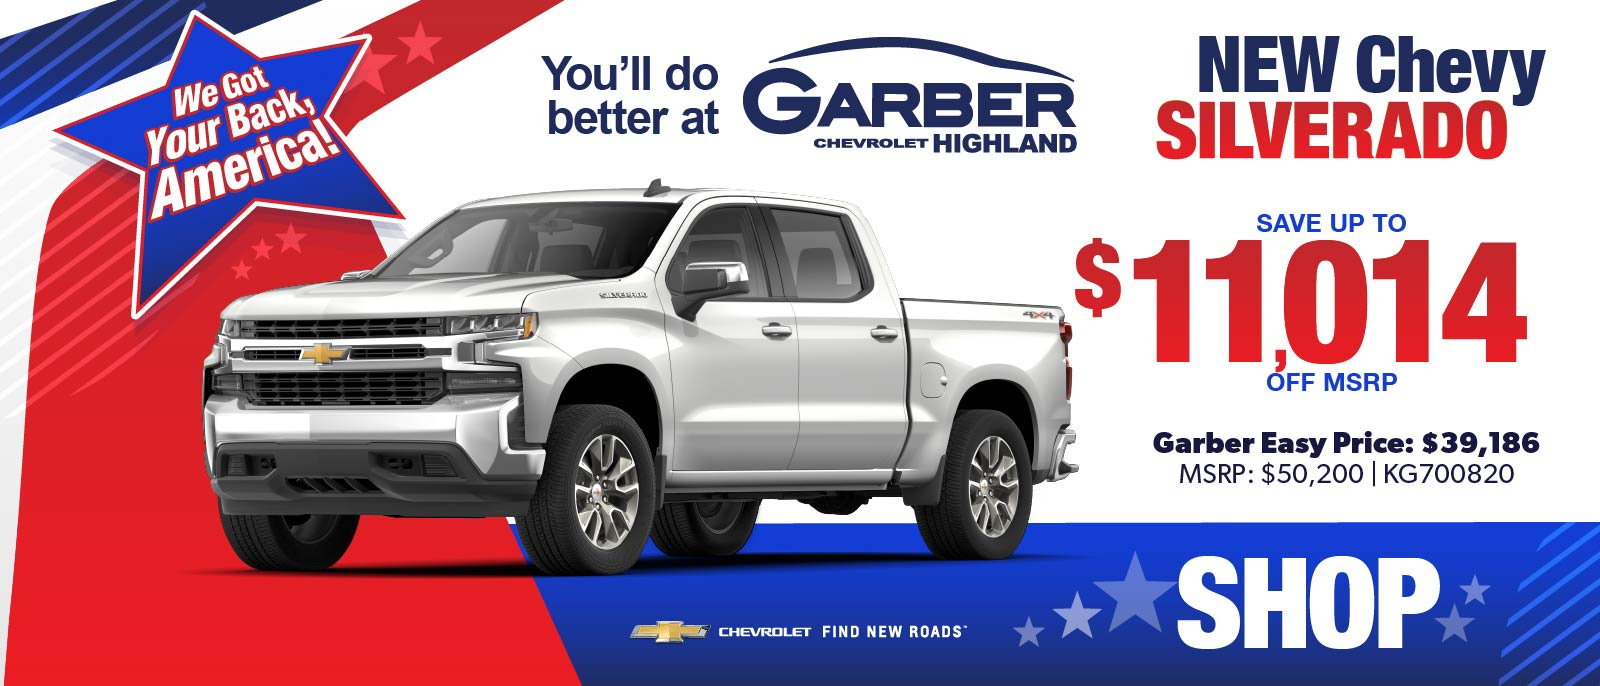 NEW Chevy Silverado - SAVE up to $11,014 off MSRP | Garber Easy Price: $39,186 | MSRP $50,200 #KG700820